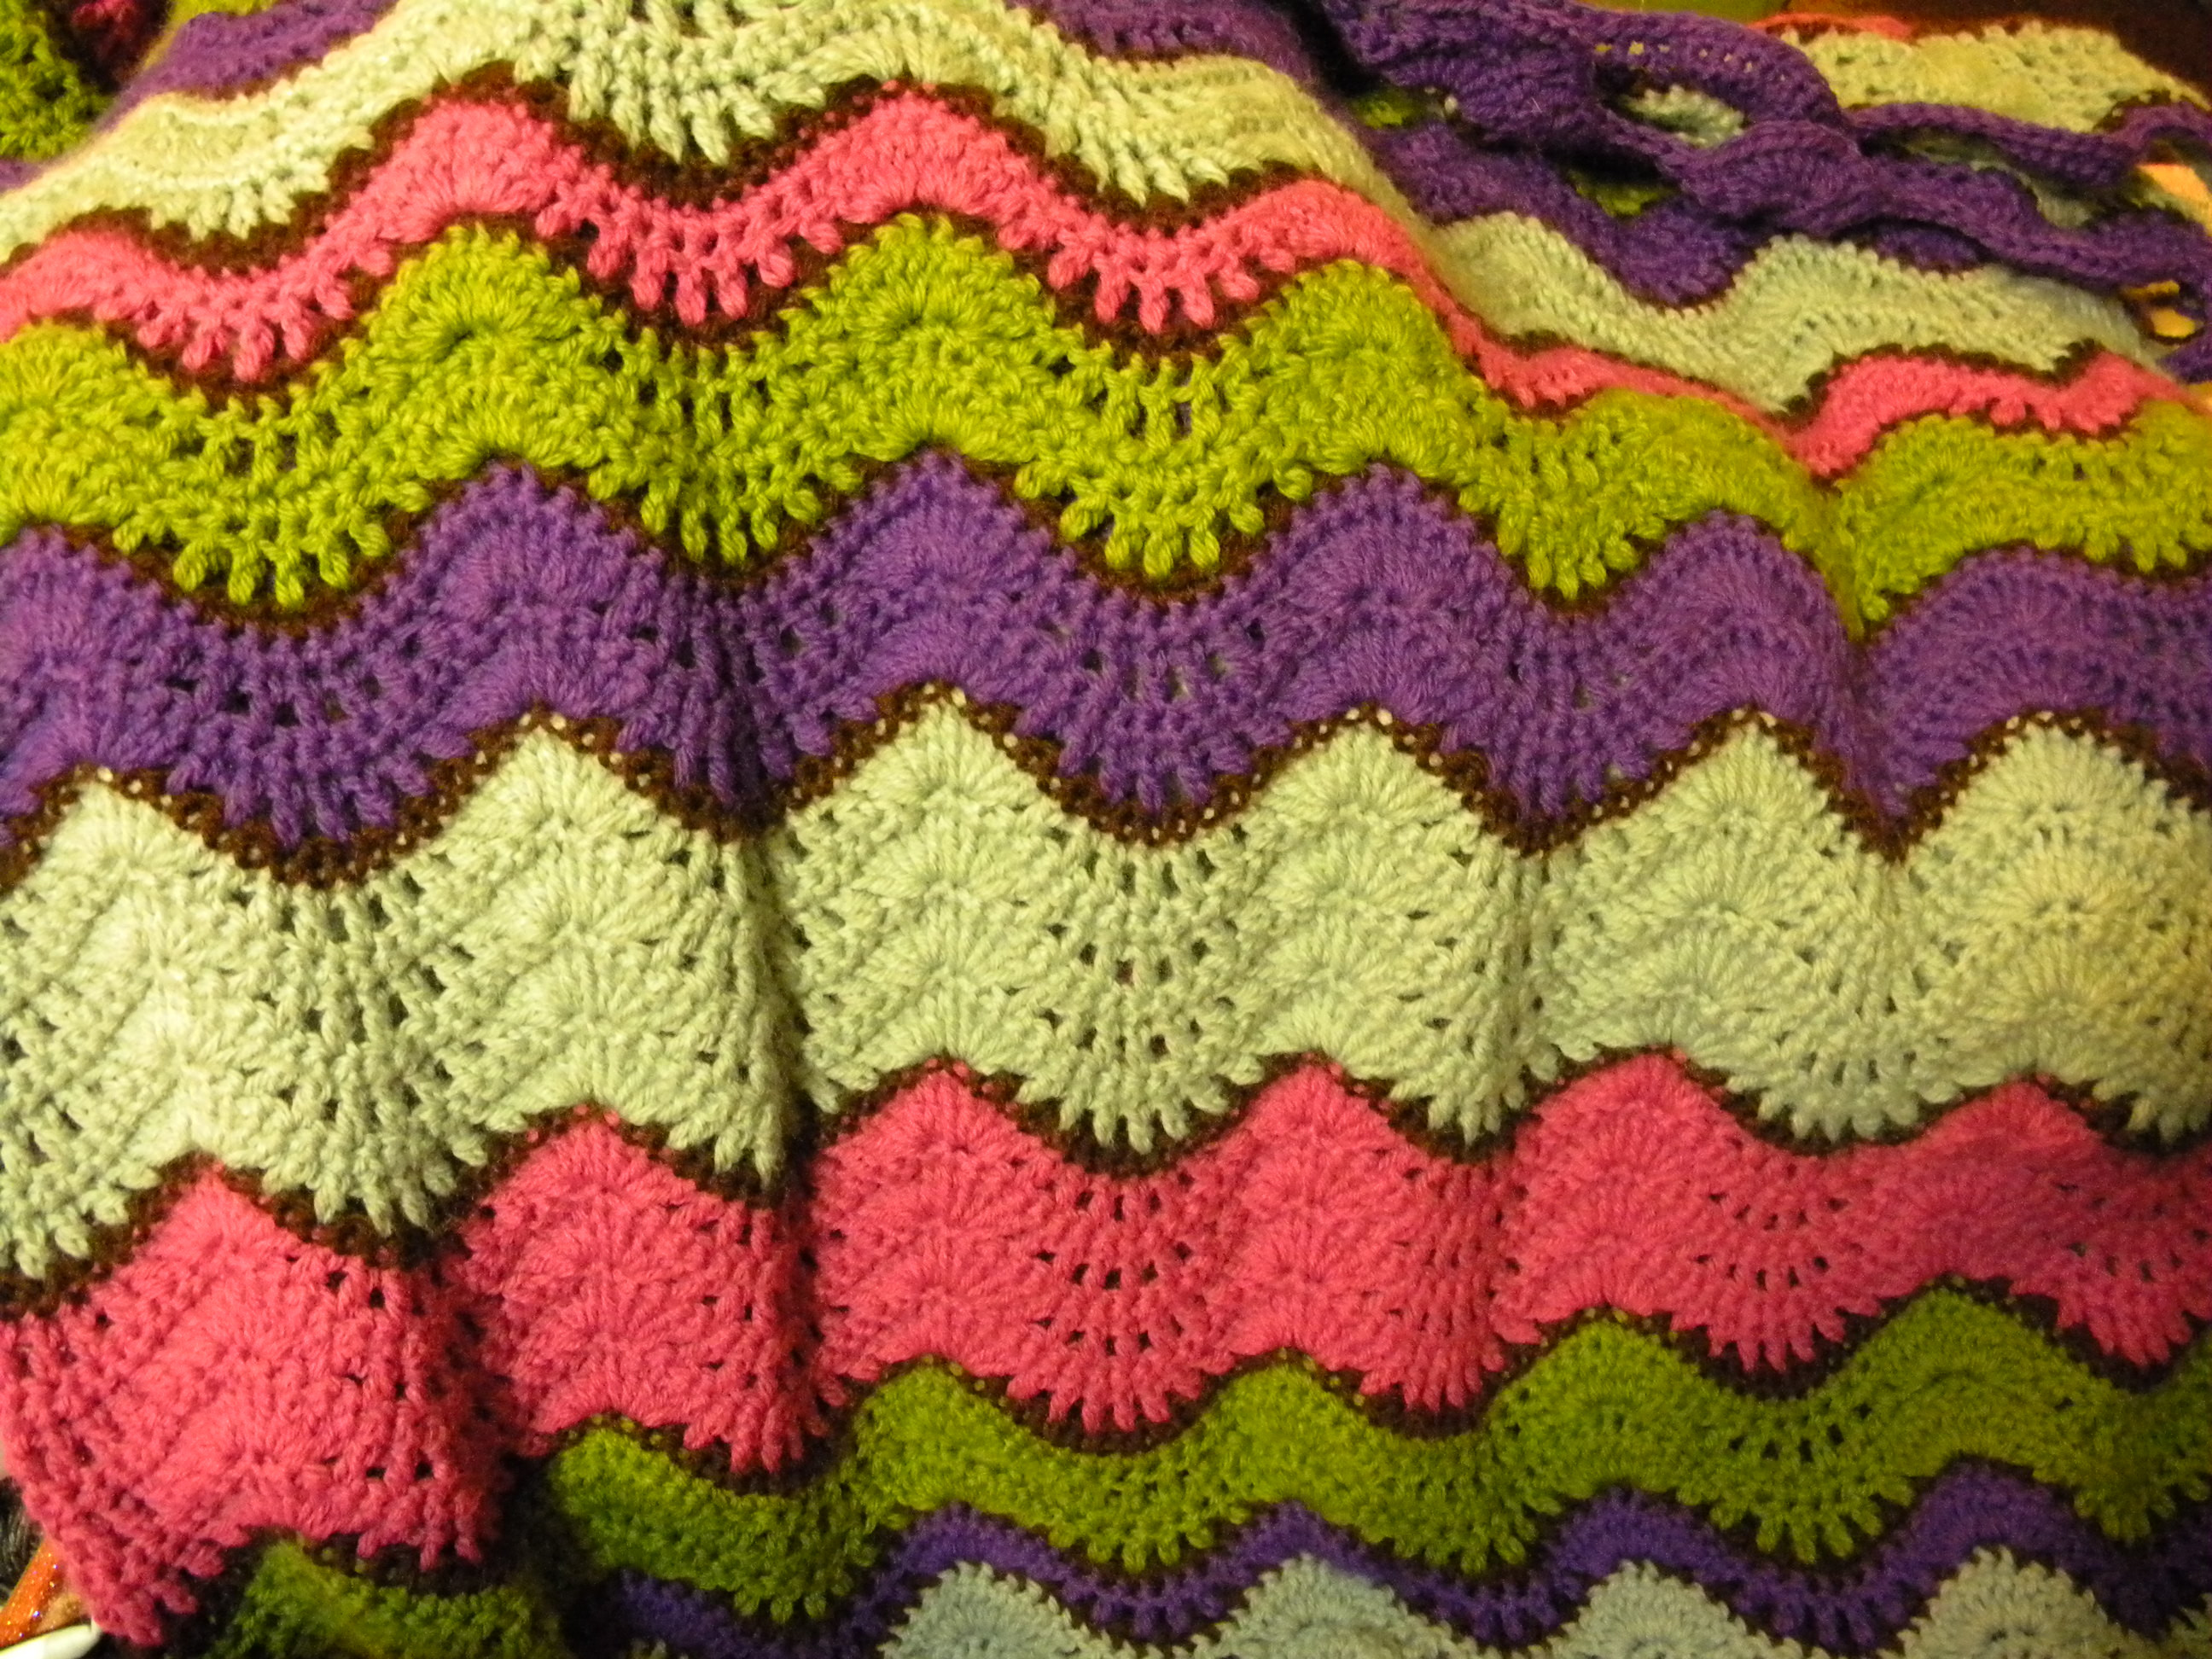 Lovely Crochet Stitches Ripple Afghan Wmperm for Afghan Stitch _afghan Stitch